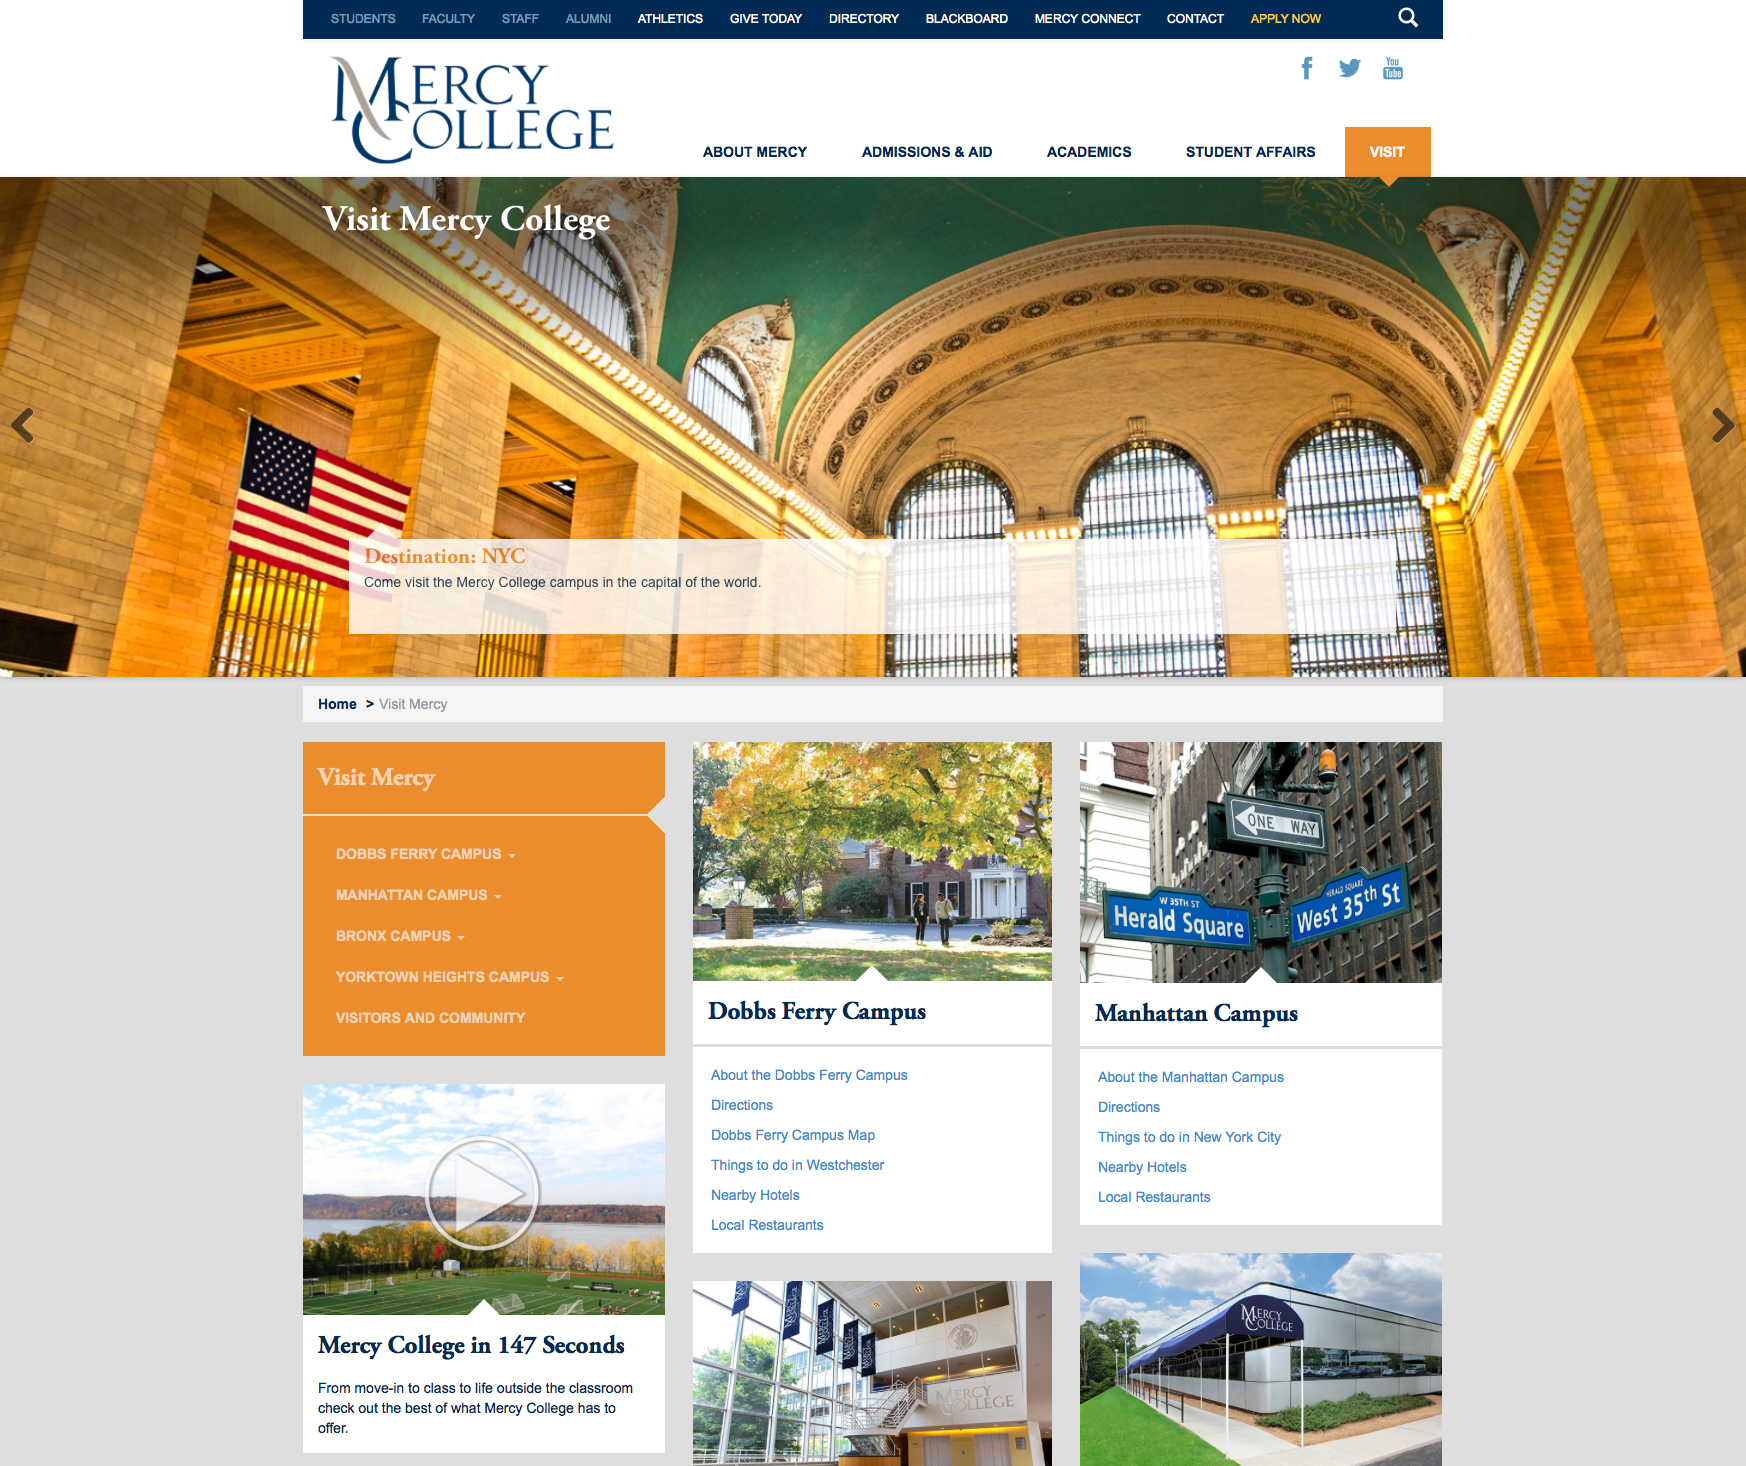 Project Image 4 for Mercy College